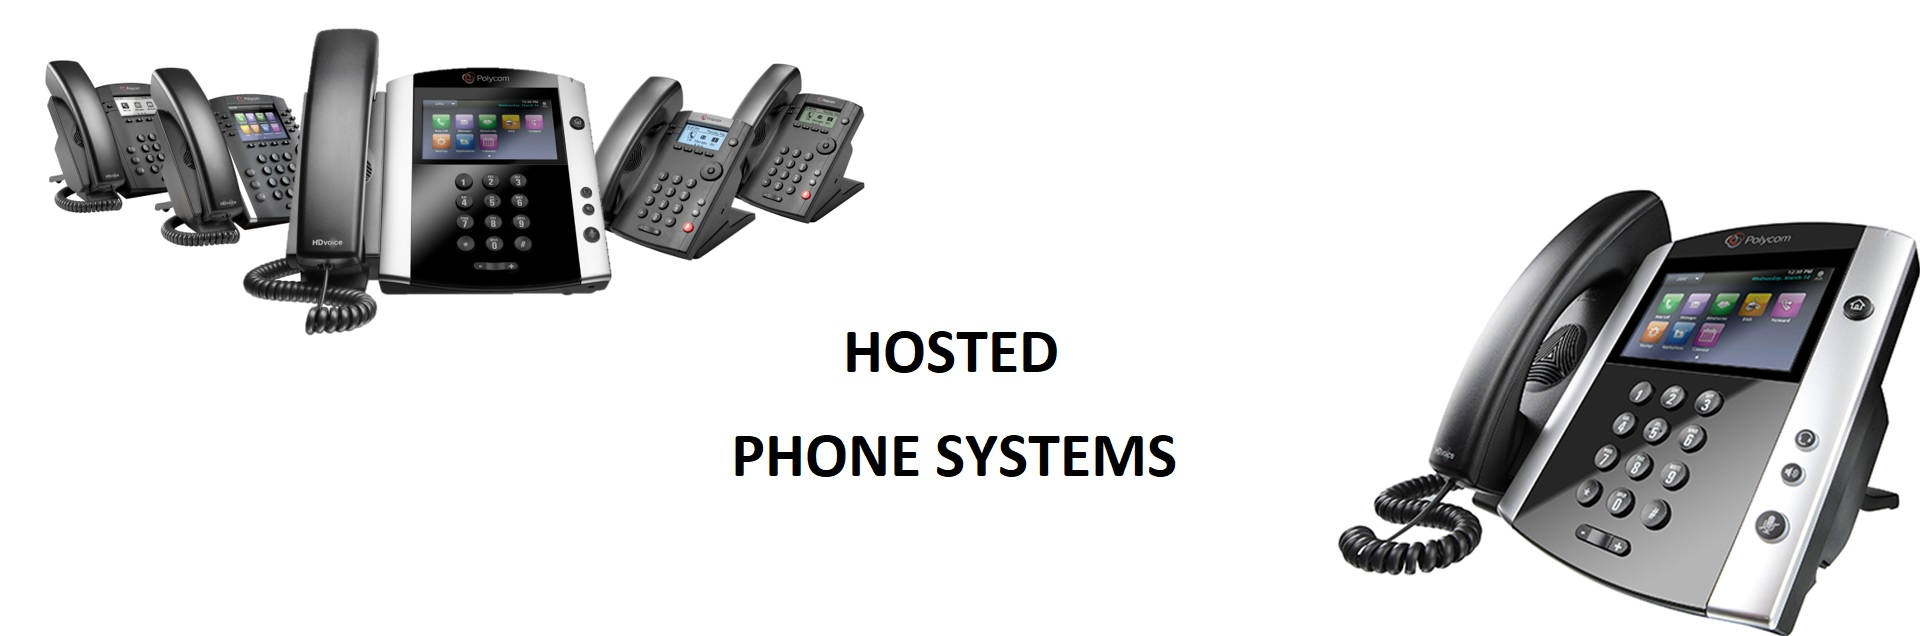 HOSTED PHONE SYSTEMS.jpg